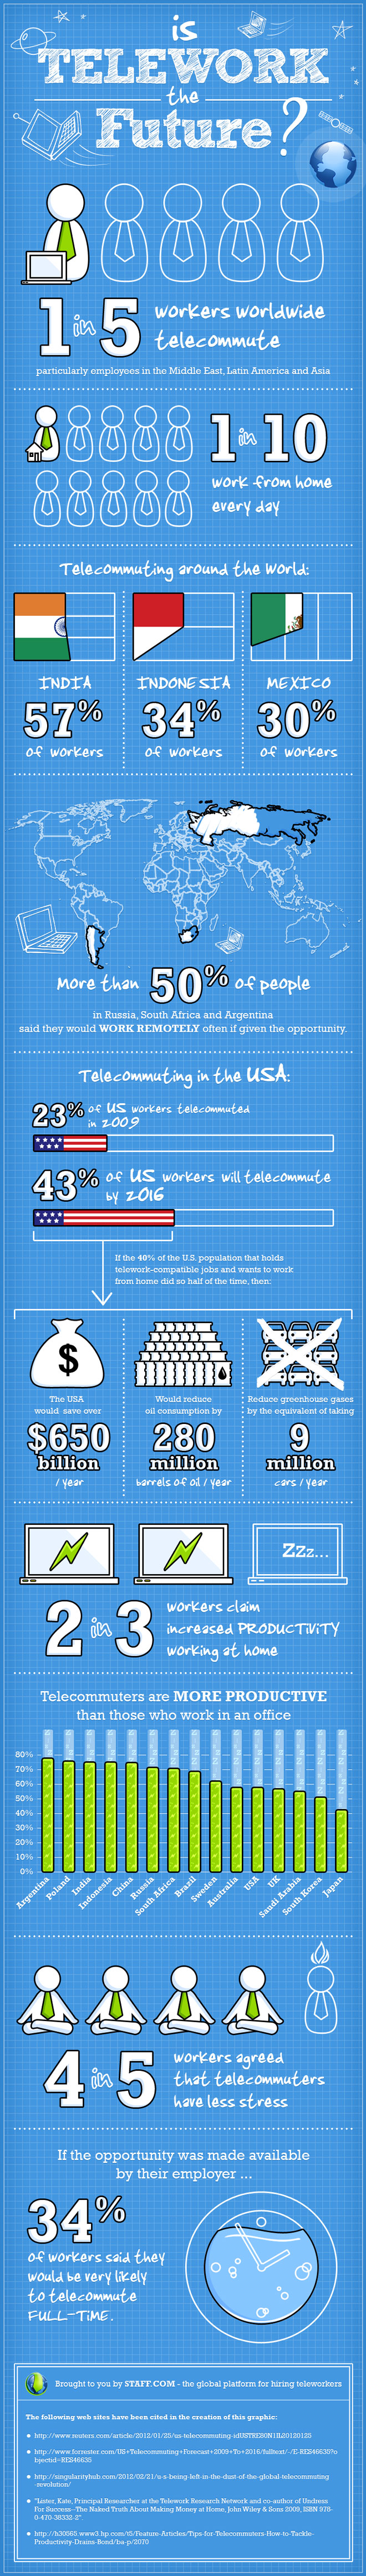 Is Telework the future? Infographic